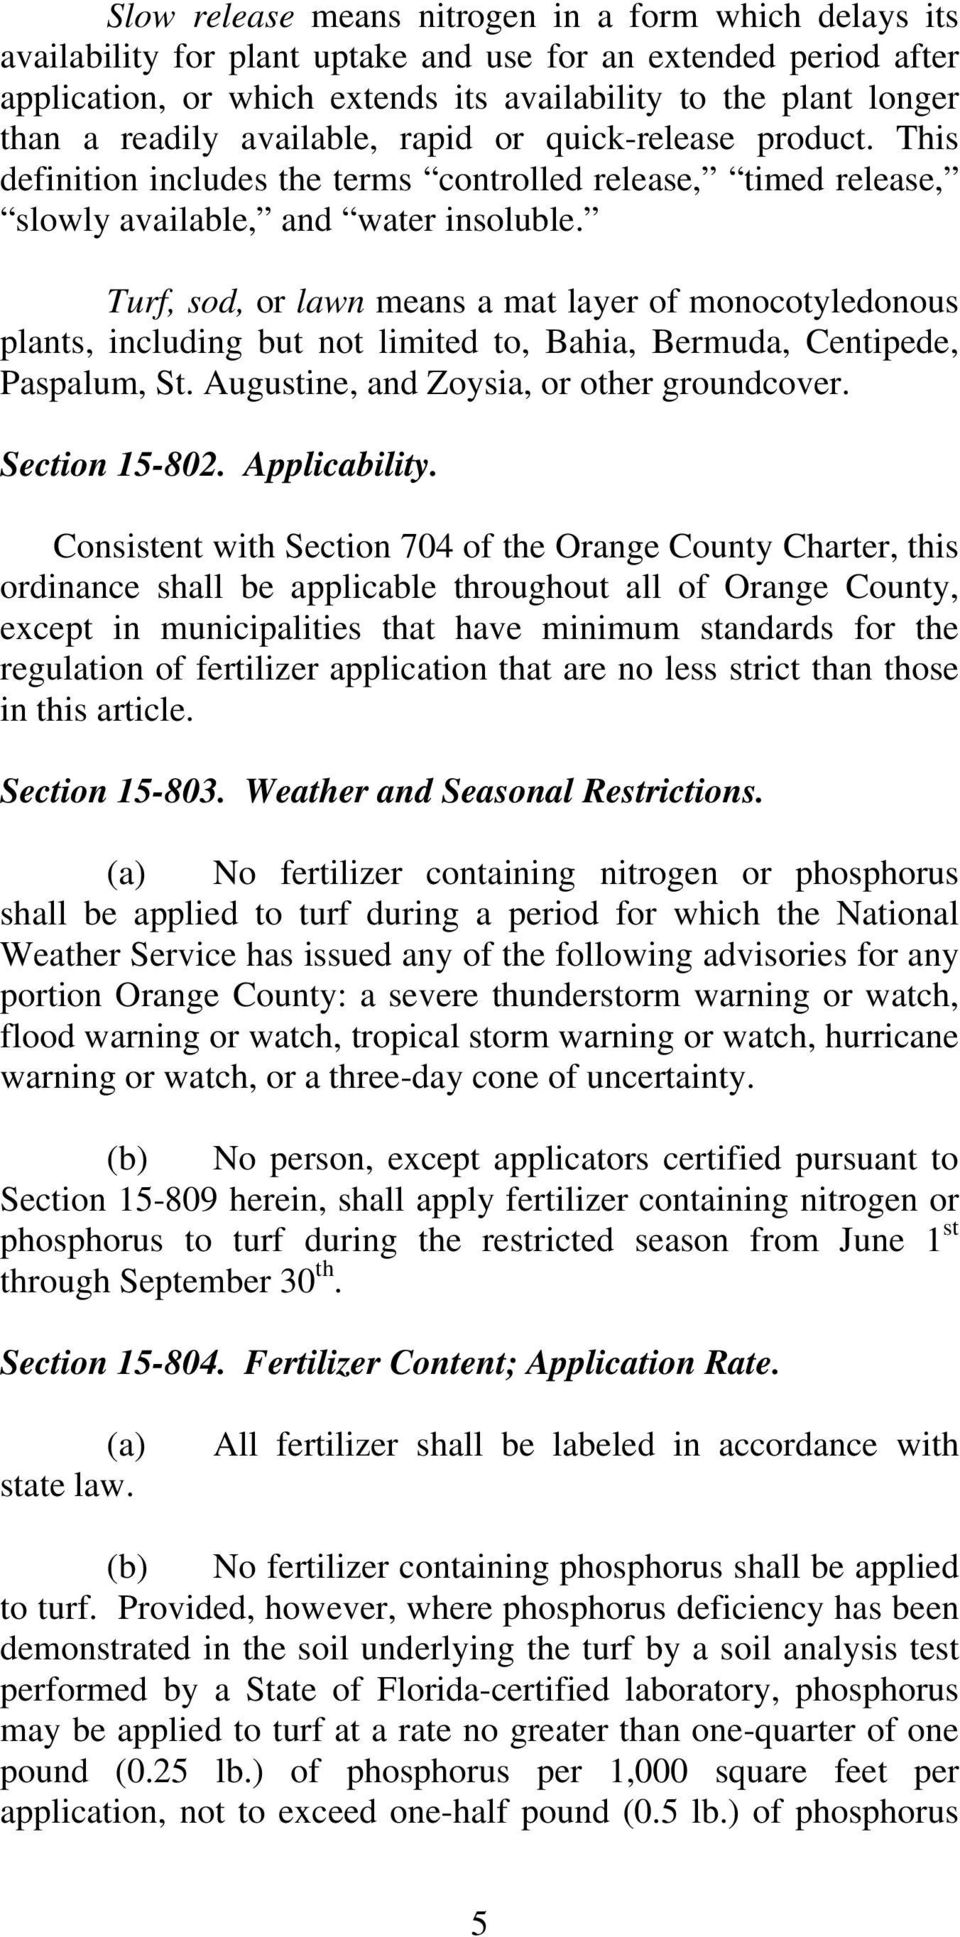 Turf, sod, or lawn means a mat layer of monocotyledonous plants, including but not limited to, Bahia, Bermuda, Centipede, Paspalum, St. Augustine, and Zoysia, or other groundcover. Section 15-802.